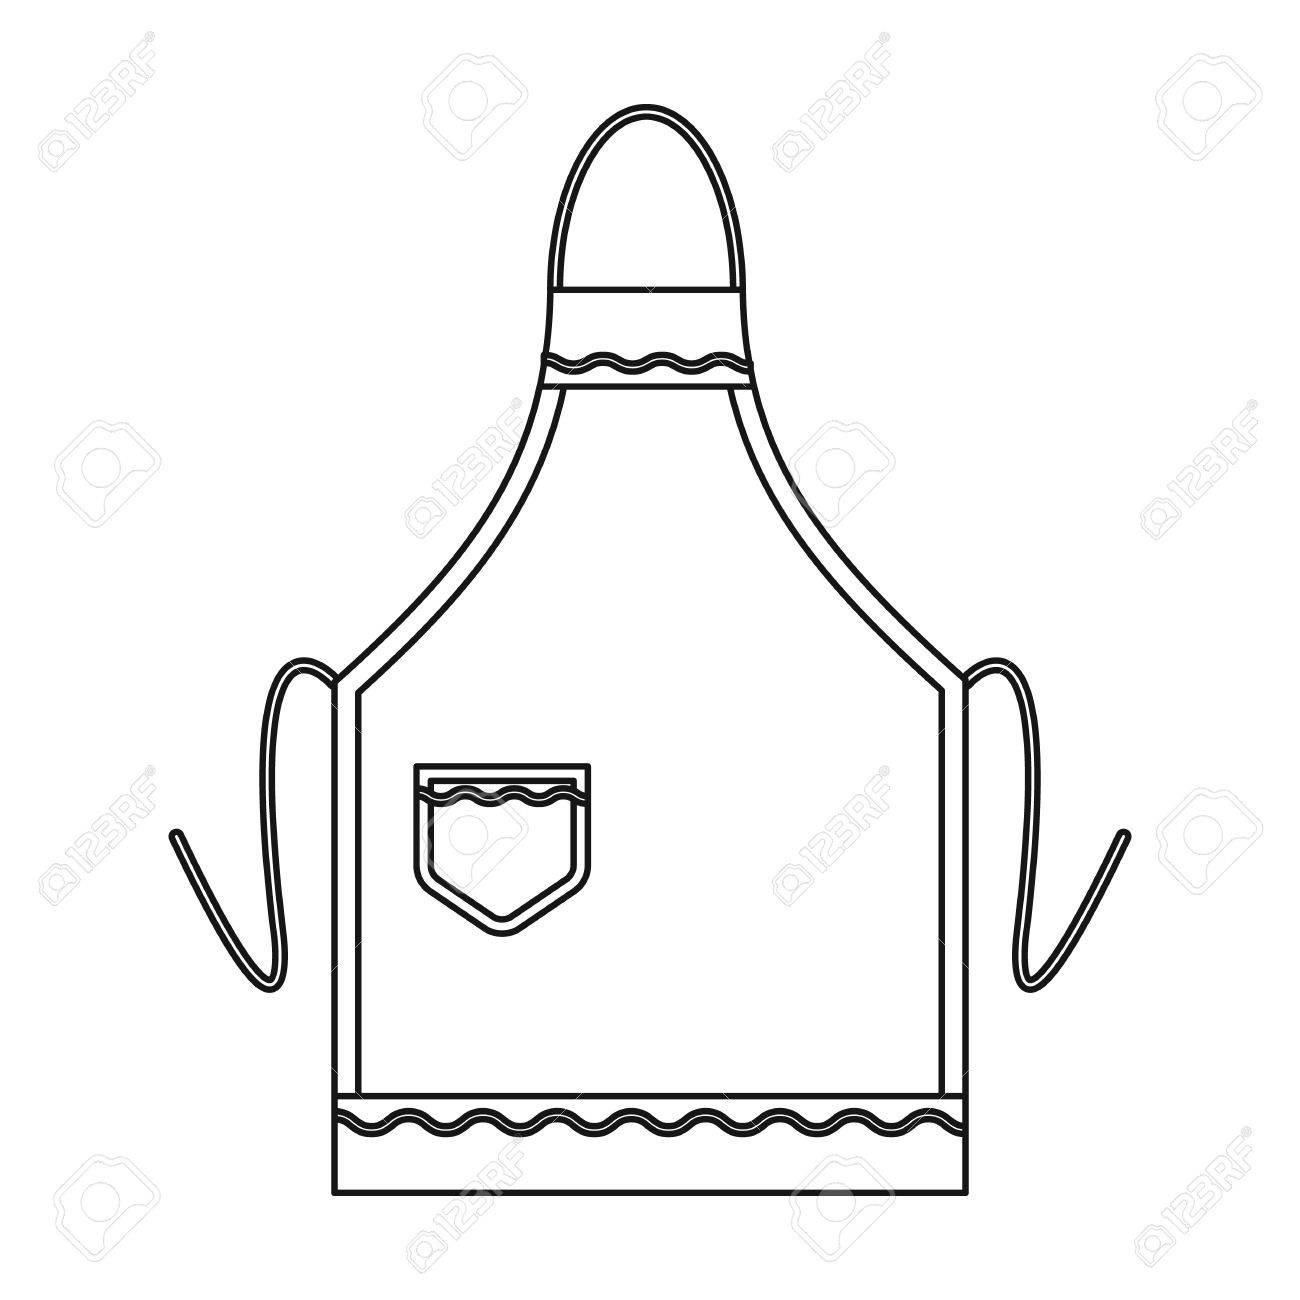 Icon in style isolated. Apron clipart outline